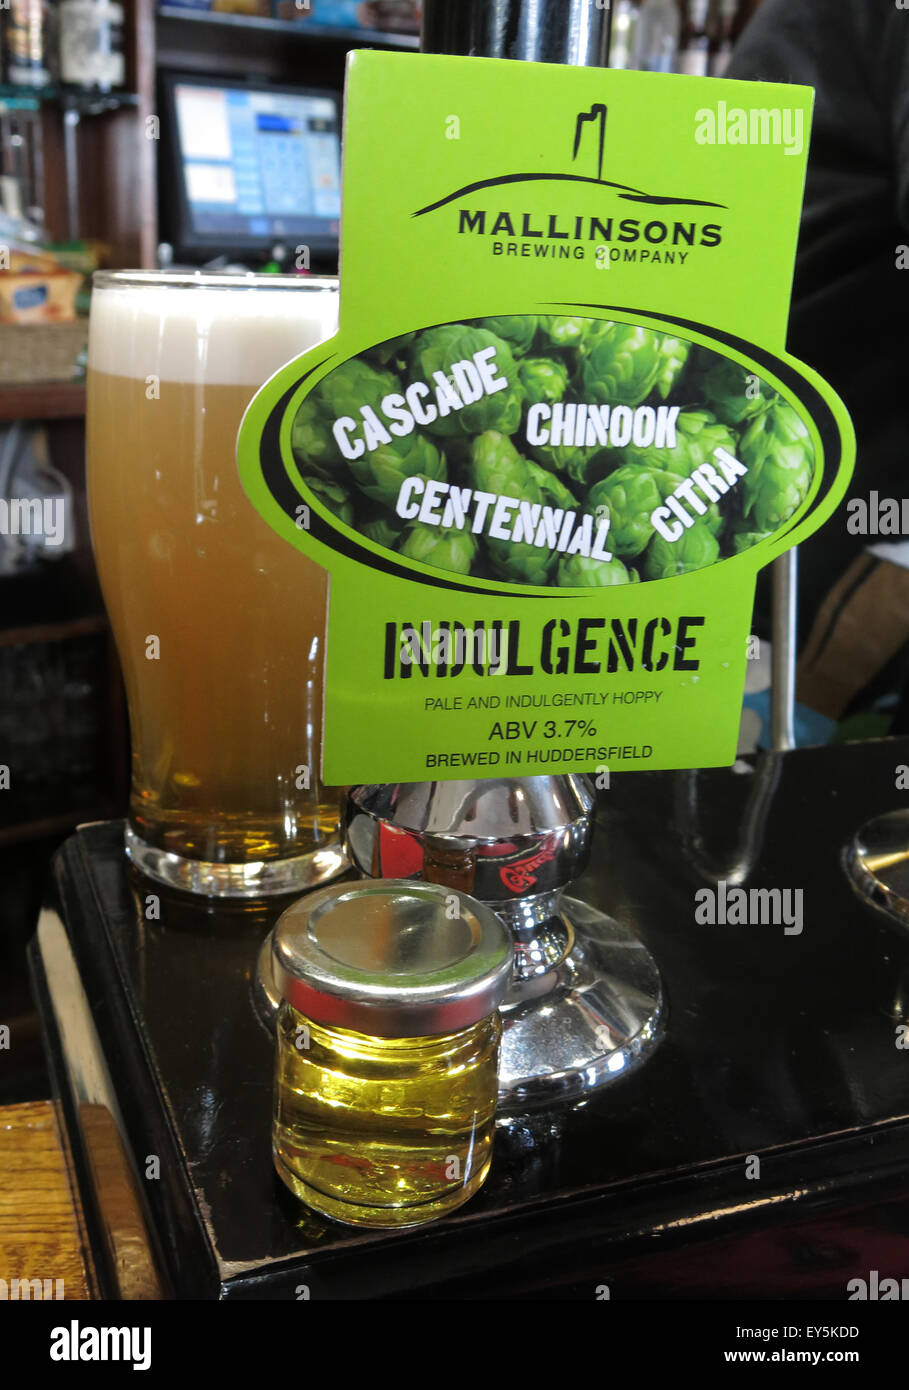 Mallinsons Indulgence,Real Ale with taster bottle to show colour - Stock Image